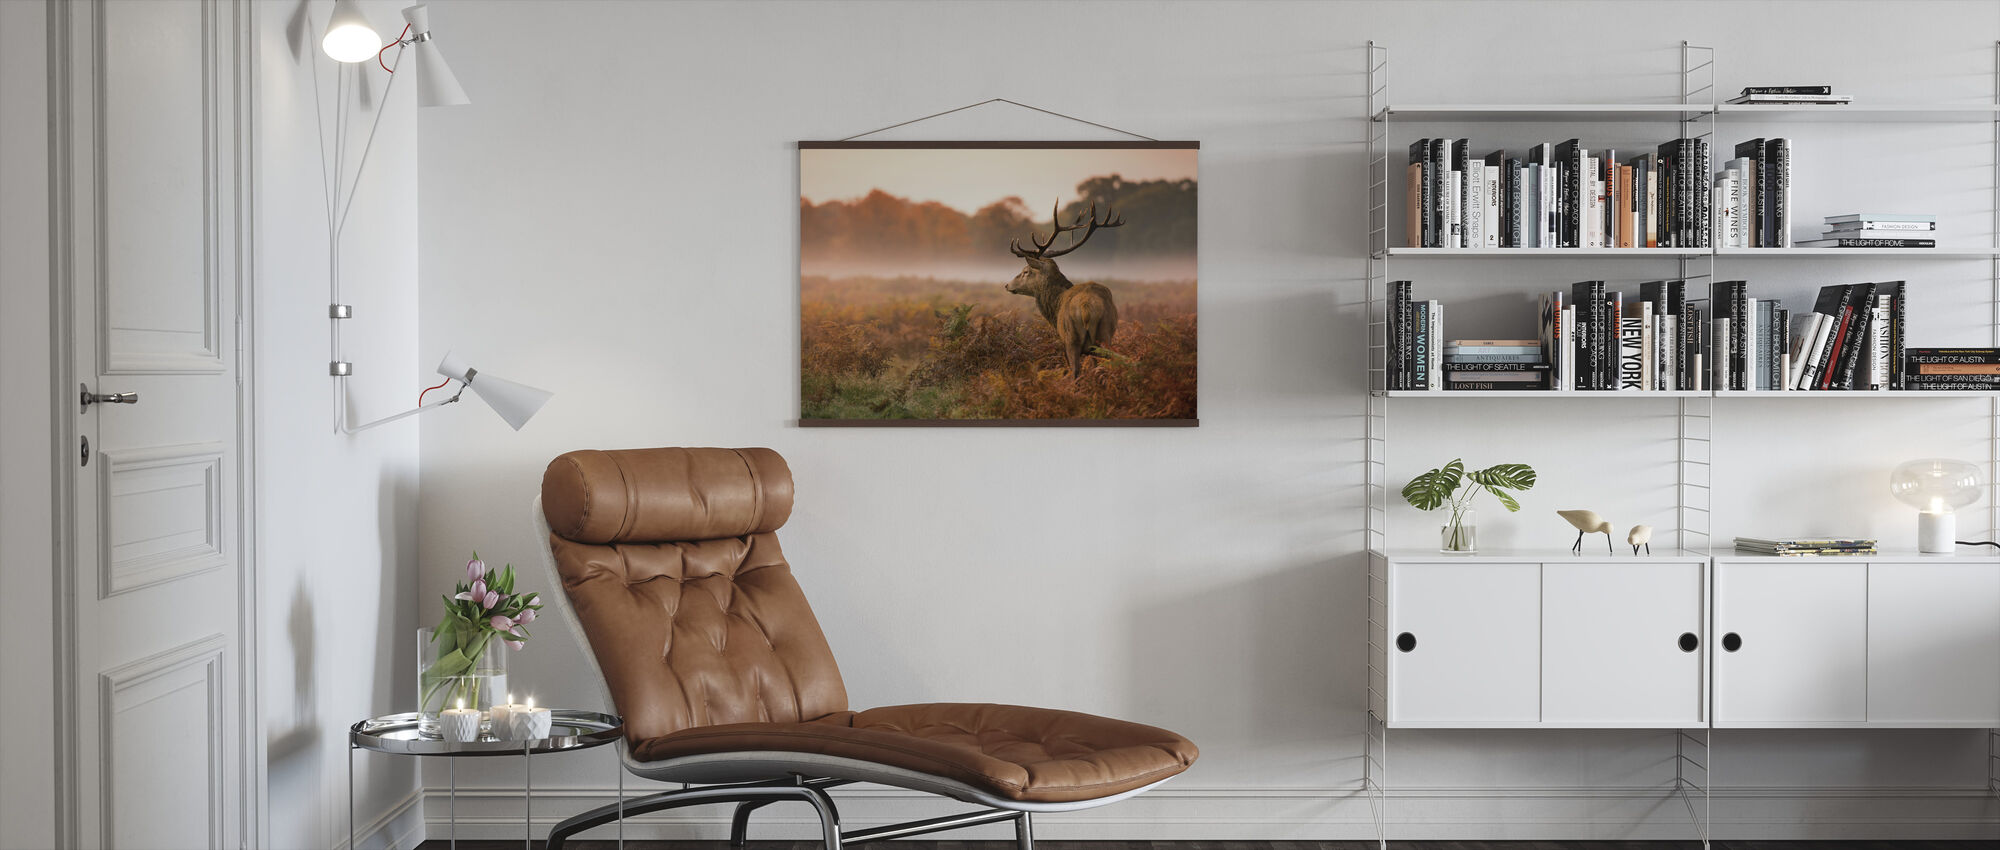 Red Deer Stag - Poster - Living Room